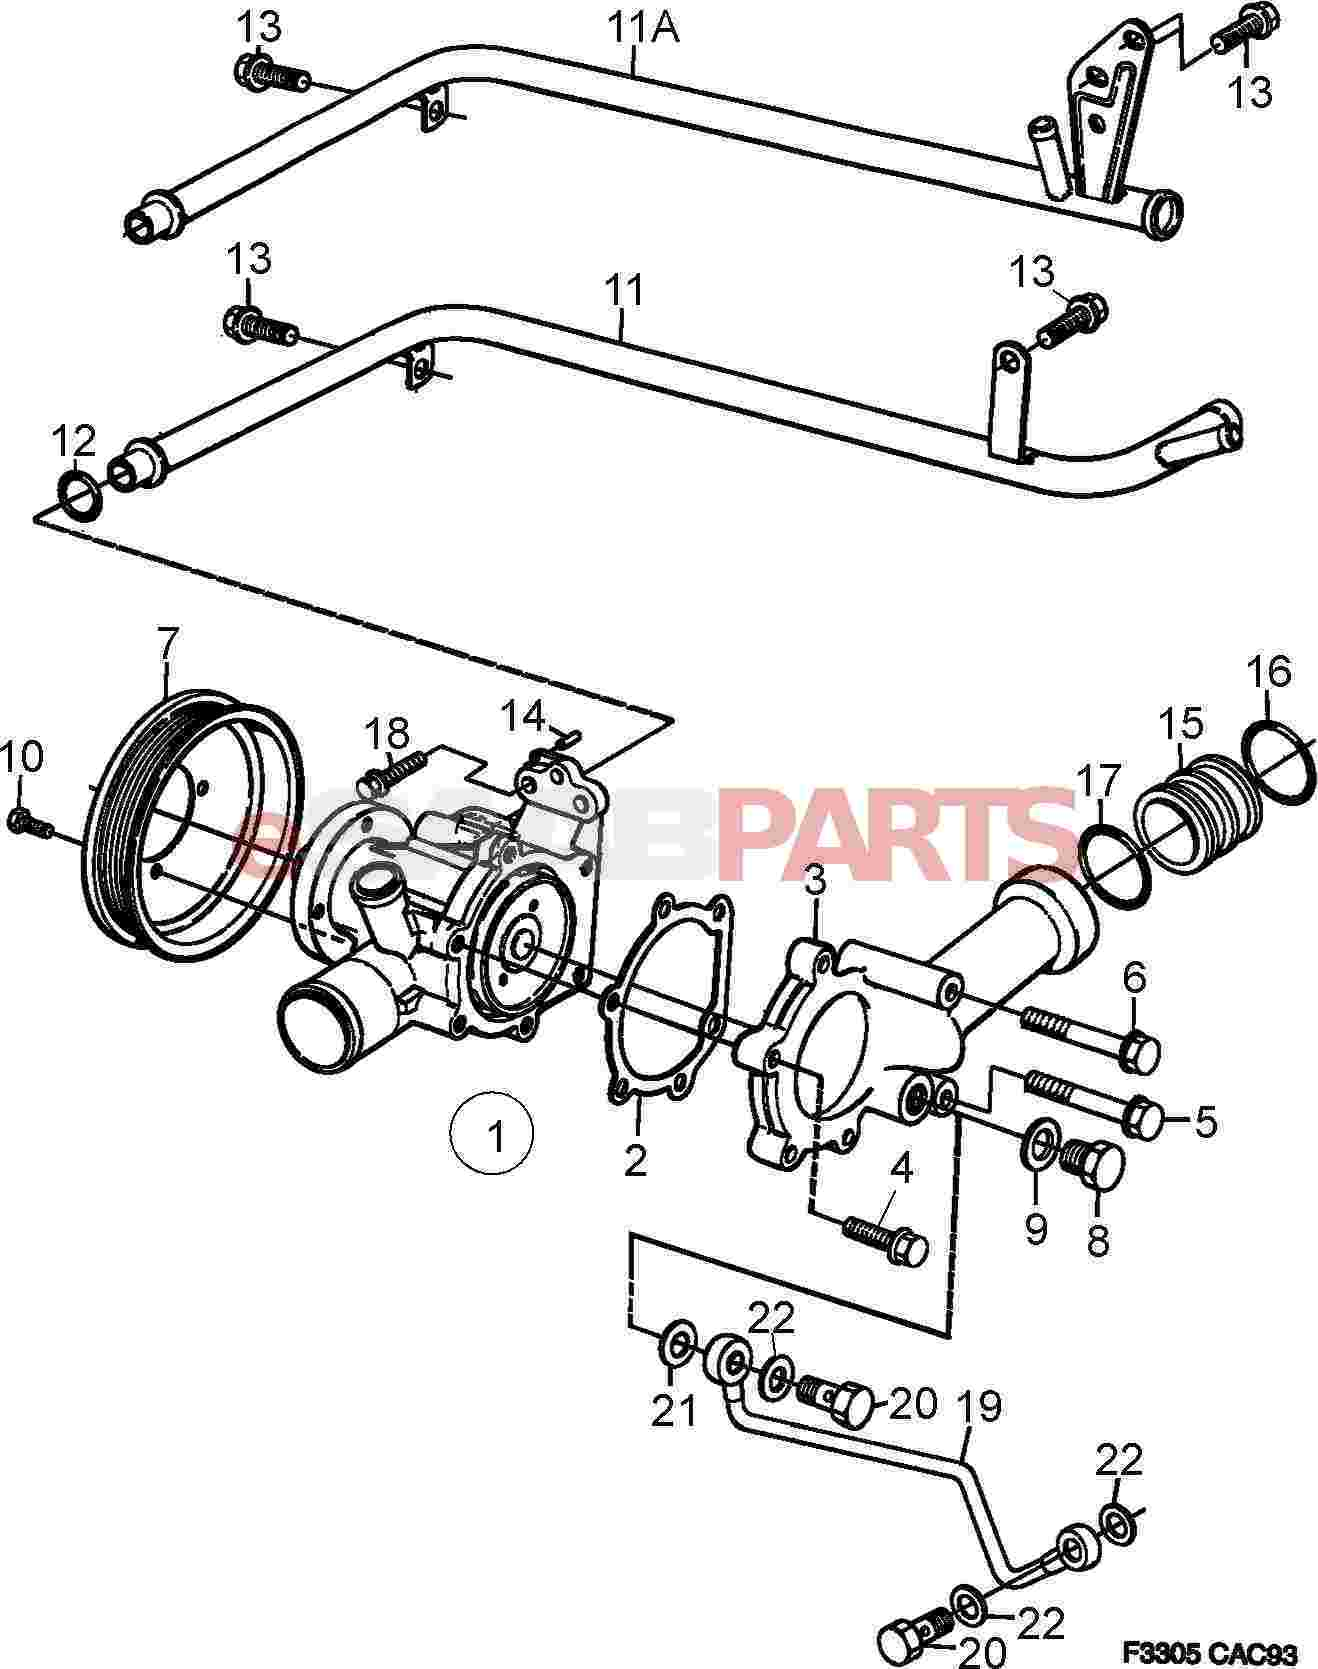 Saab 9 3 Turbo Engine Diagram further Engine Coolant Temperature further Wiring Diagram For 2008 Ford F 150 as well Saab Engine Cooling Diagram together with 2001 Saturn Wiring Diagram. on saab 9 3 coolant leak